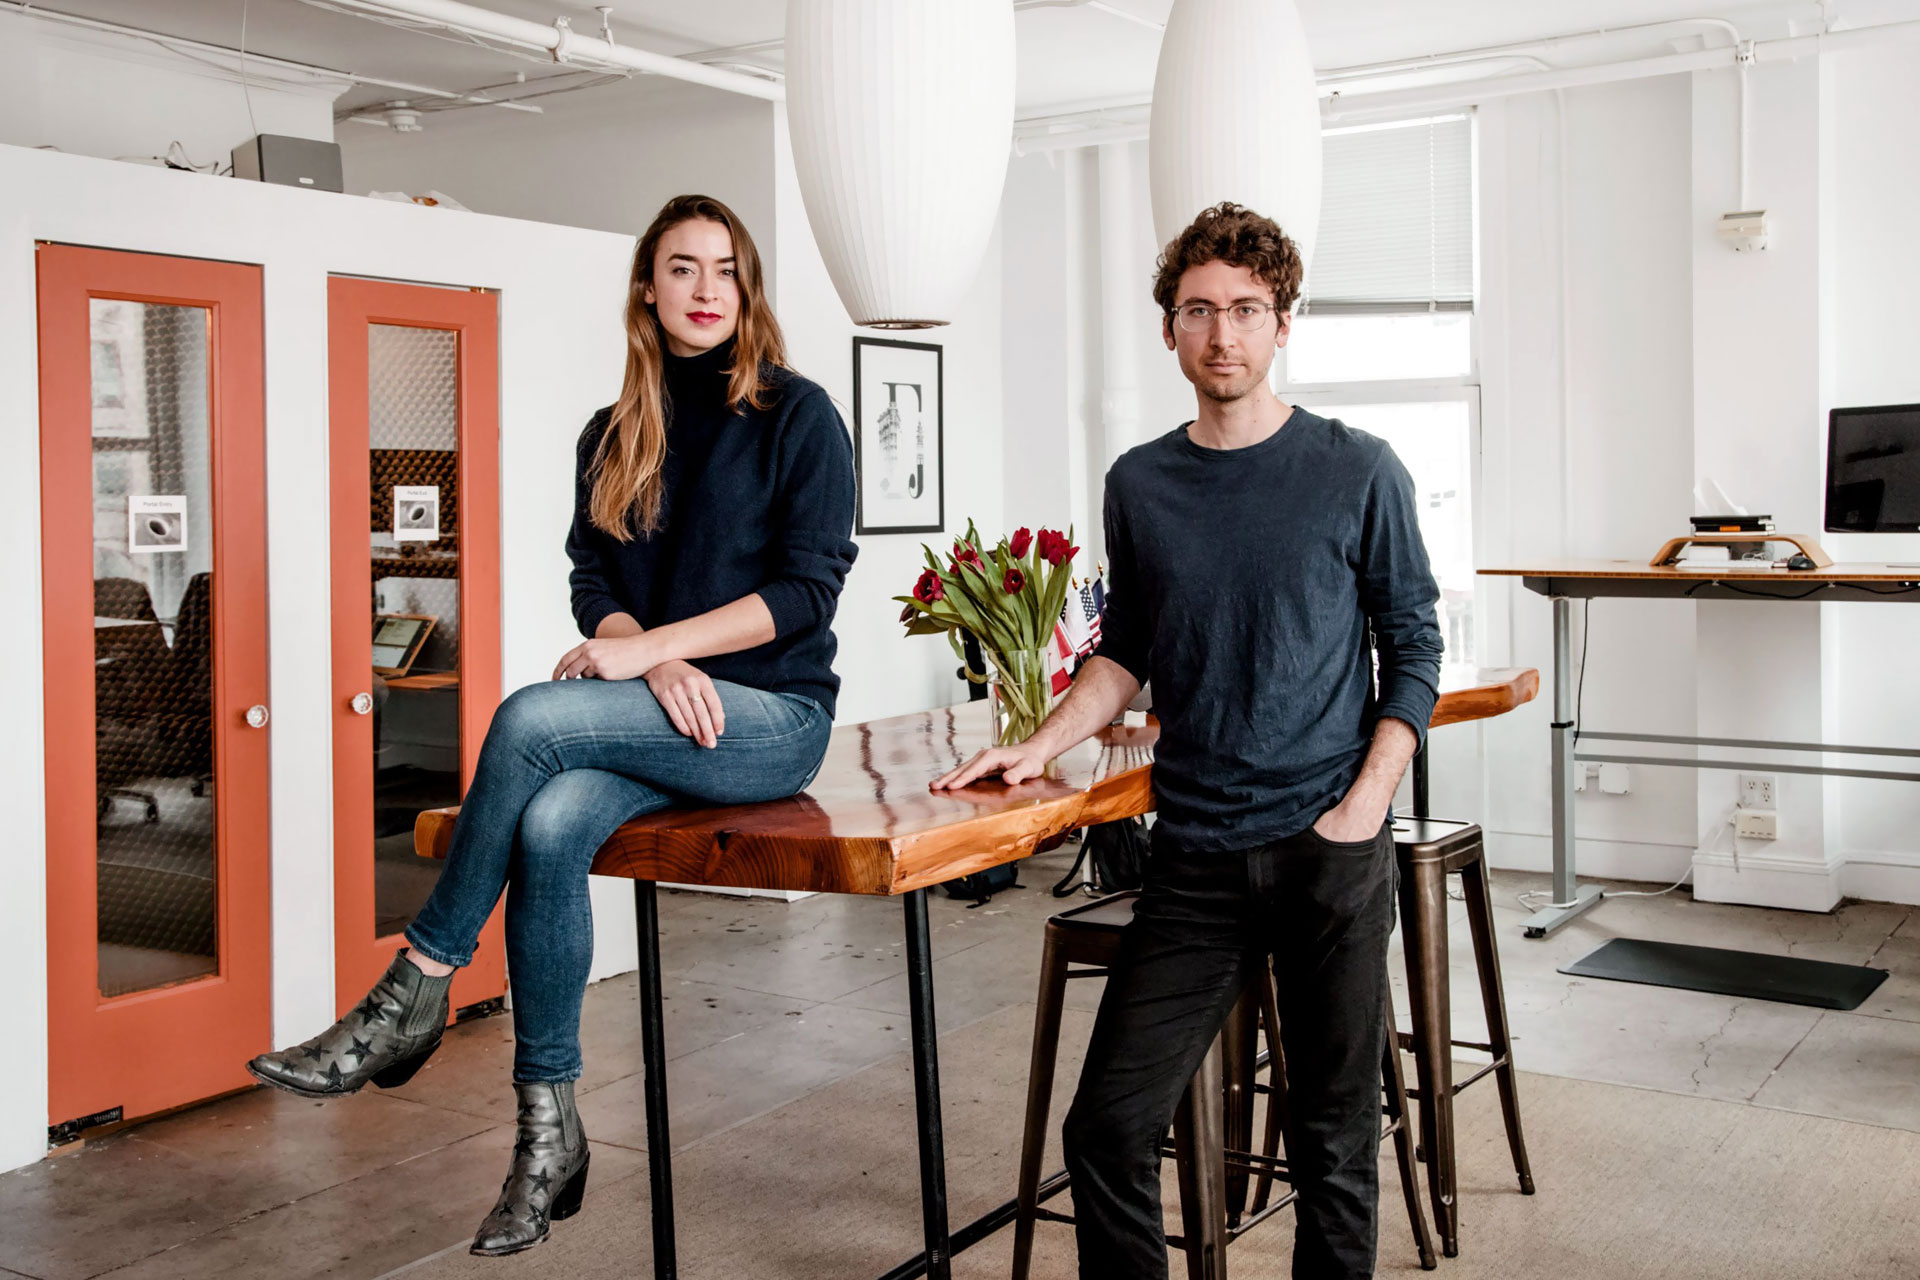 Maran Nelson and Michael Akilian, founders of Clara Labs, in their San Francisco office.